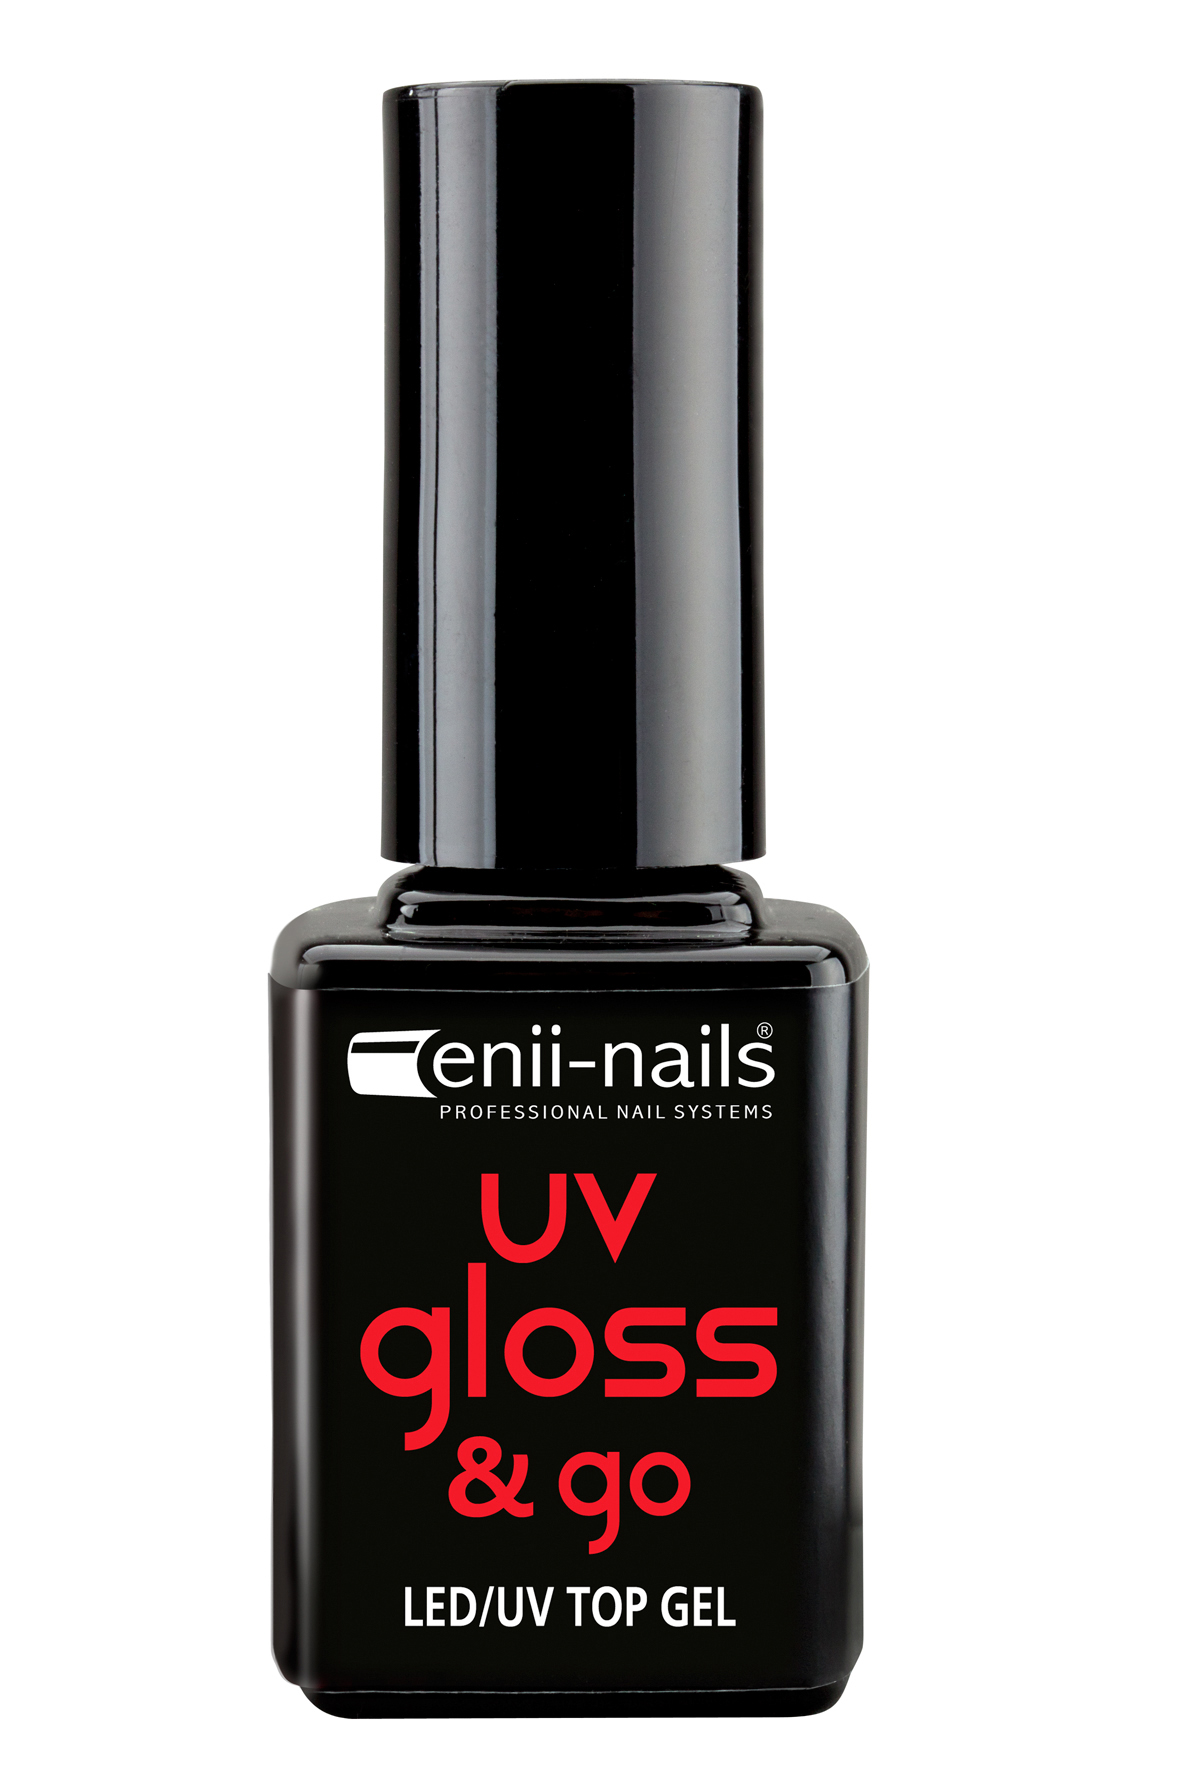 ENII-NAILS UV gloss and go 11 ml